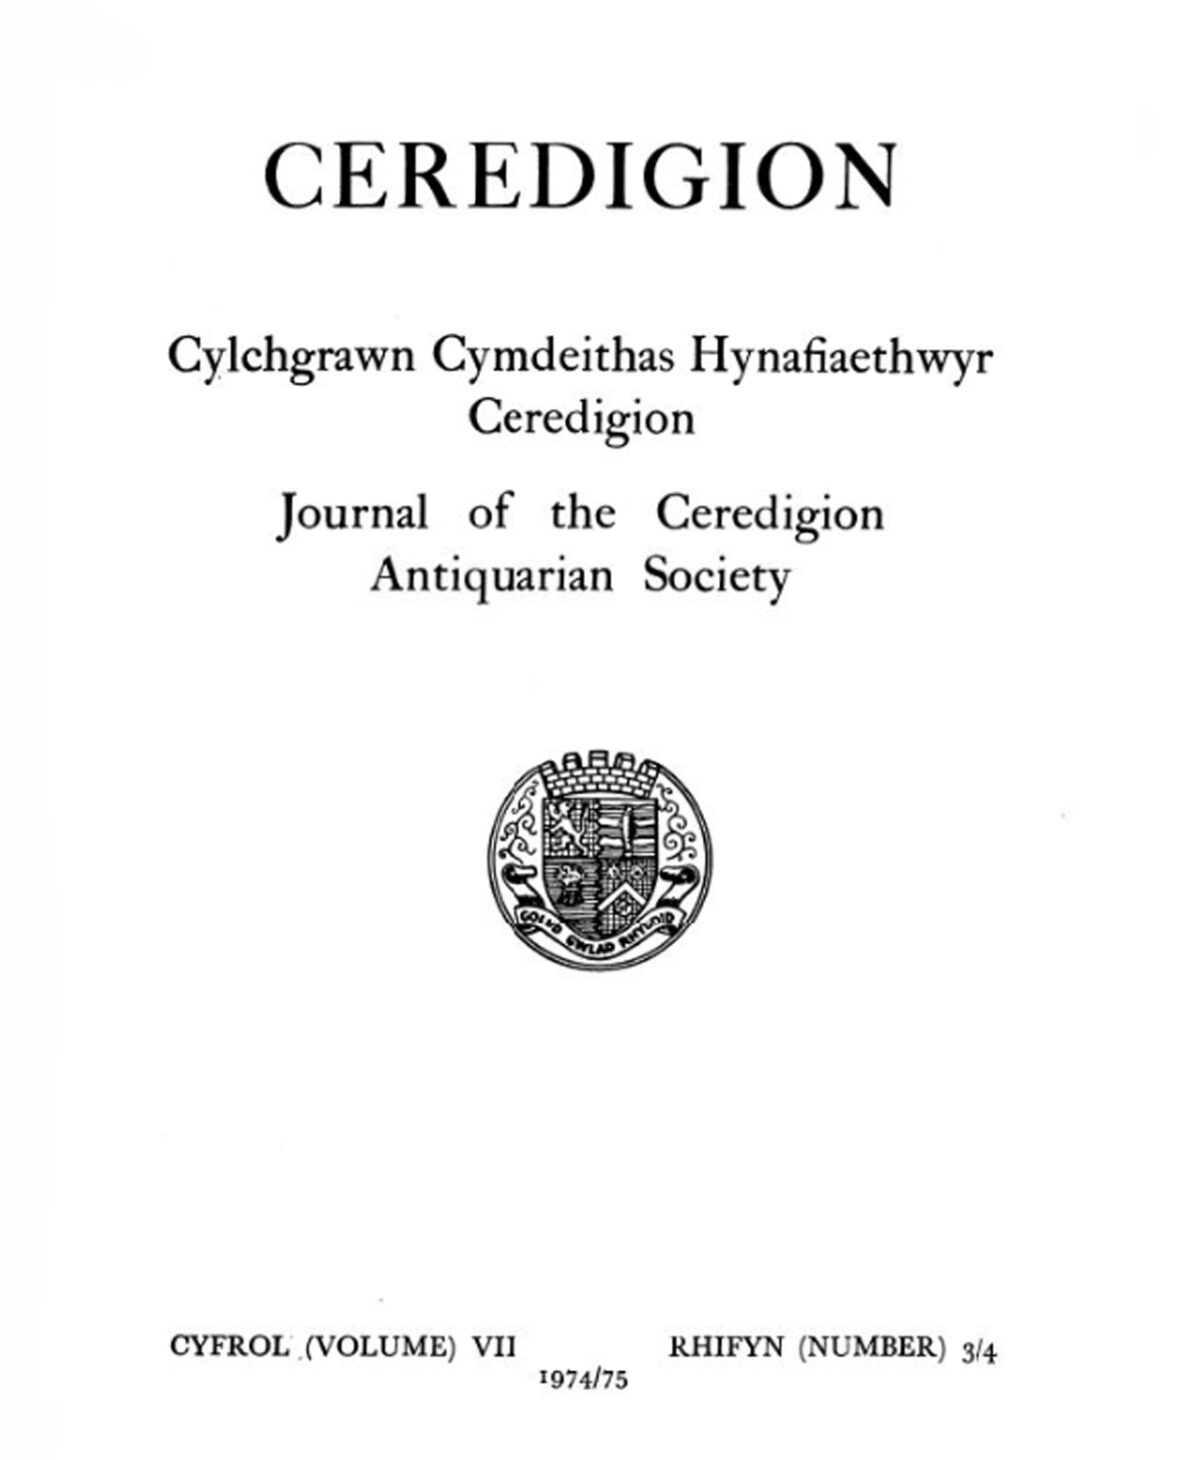 Ceredigion – Journal of the Cardiganshire Antiquarian Society, 1974-5 Vol VII No 3/4